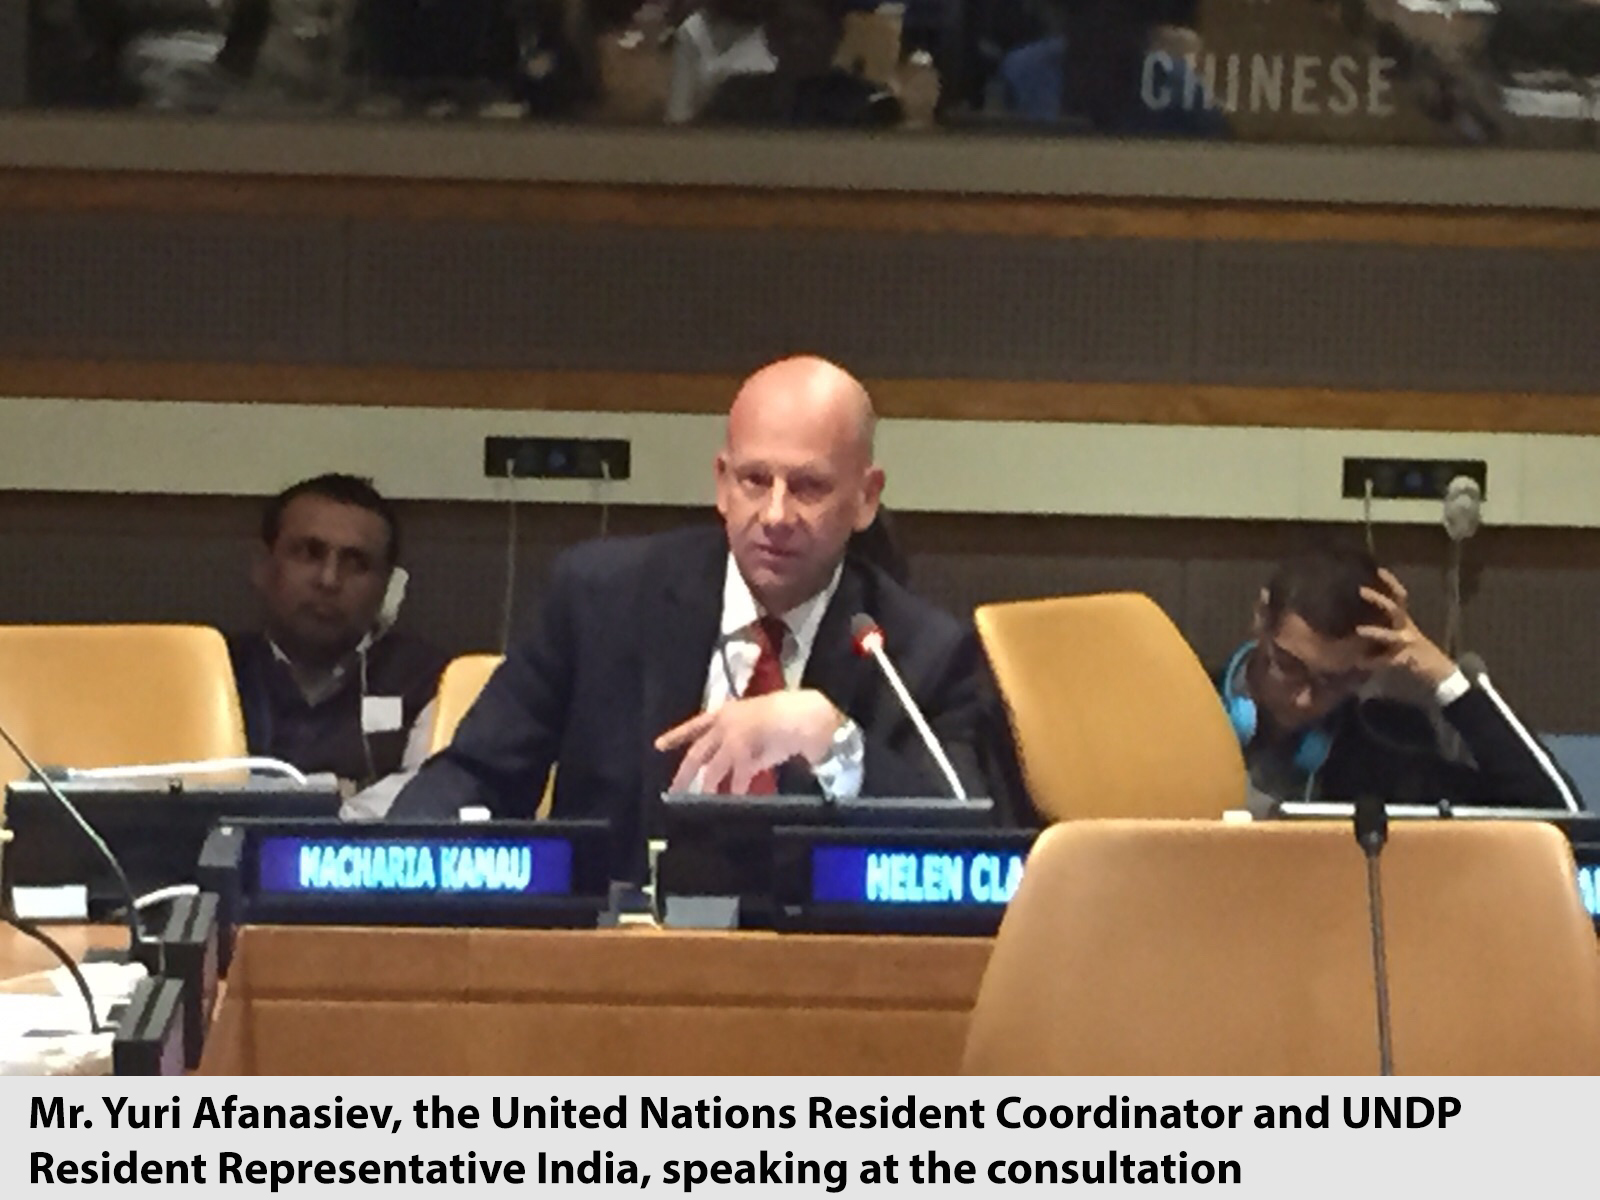 Mr. Yuri Afanasiev, the United Nations Resident Coordinator and UNDP Resident Representative India, speaking at the consultation